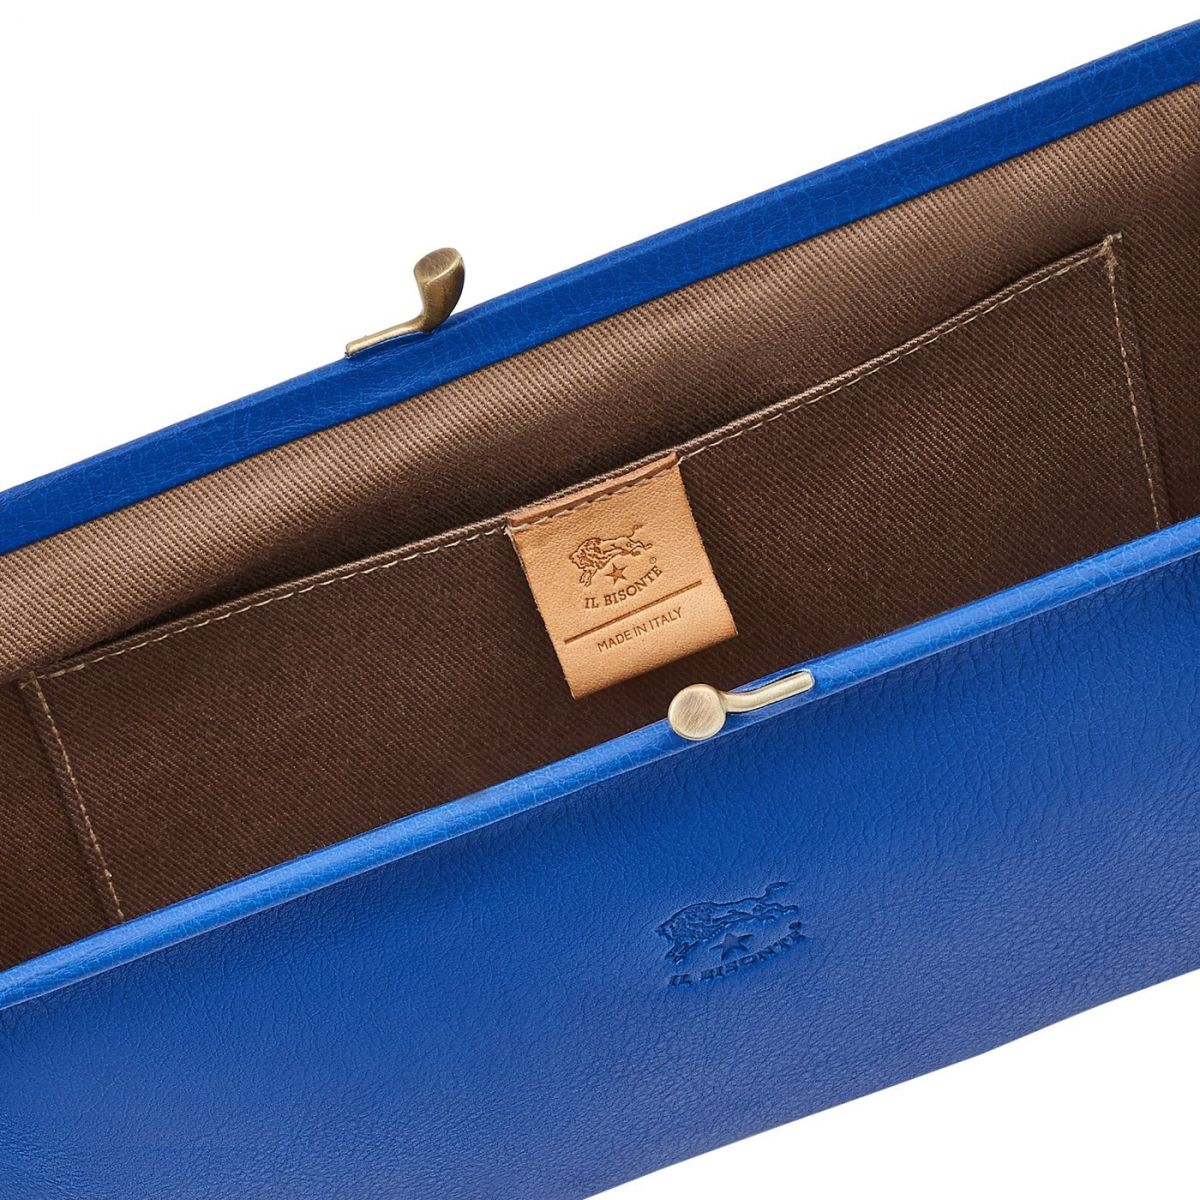 Women's Clutch Bag in Cowhide Leather BCL027 color Blueberry | Details